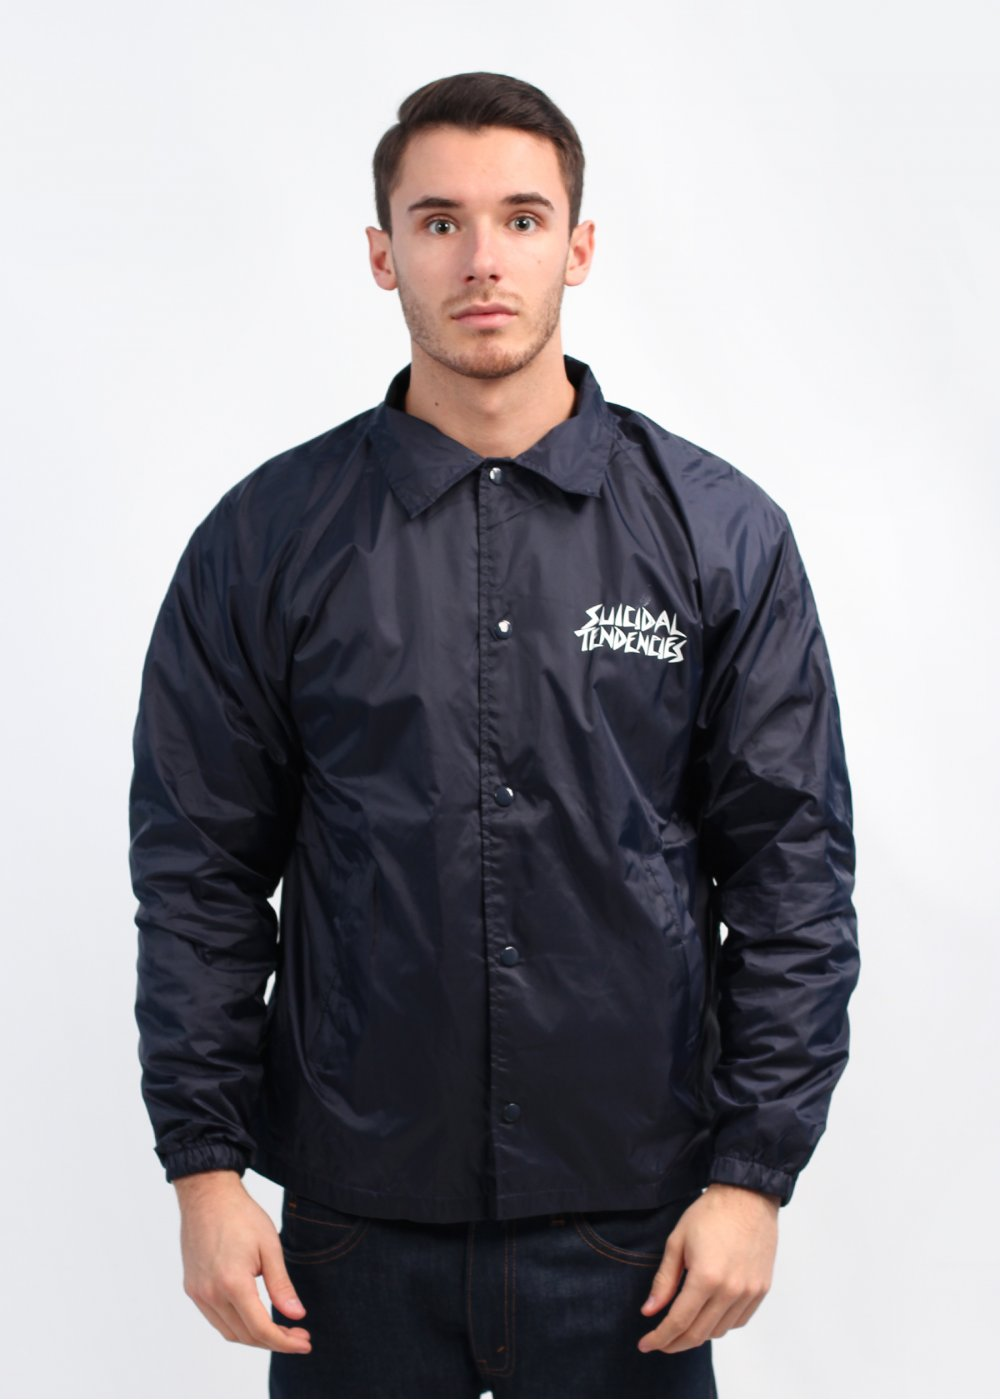 Obey X Suicidal Tendencies Pool Skater Overshirt Coach